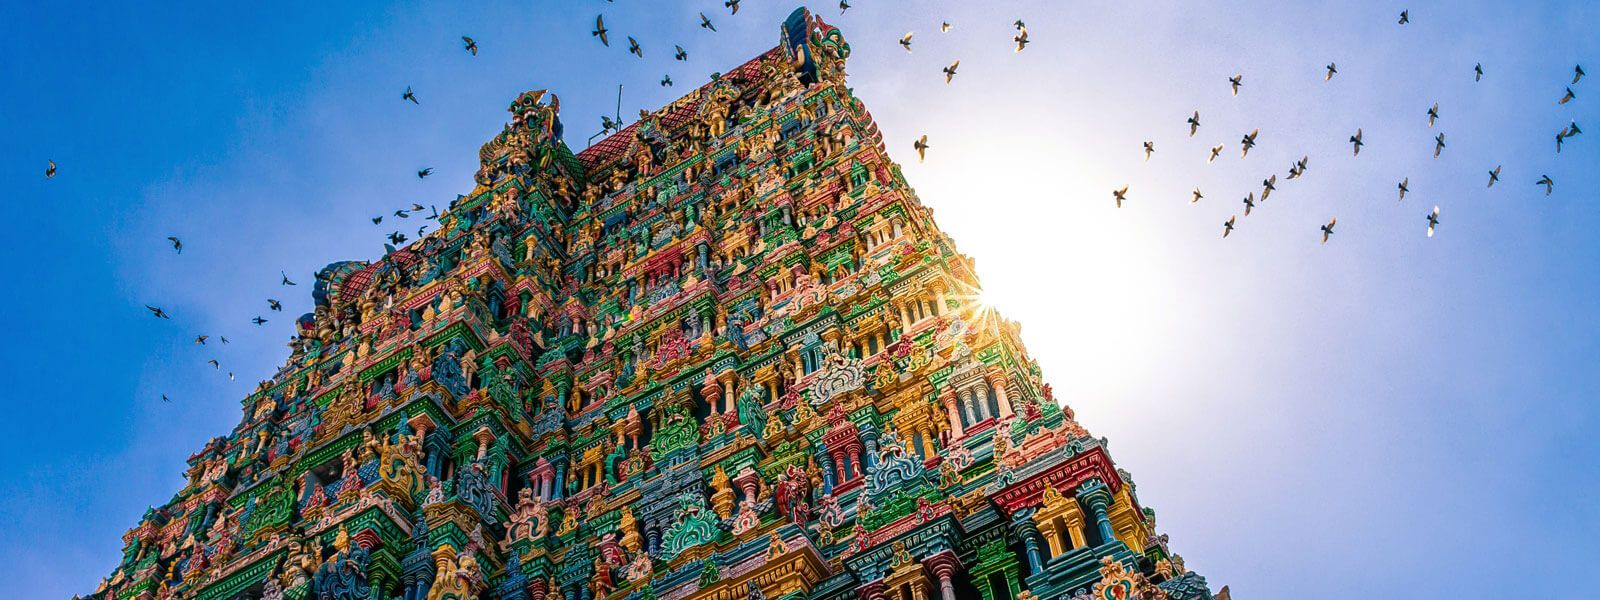 chennai pondicherry trip package